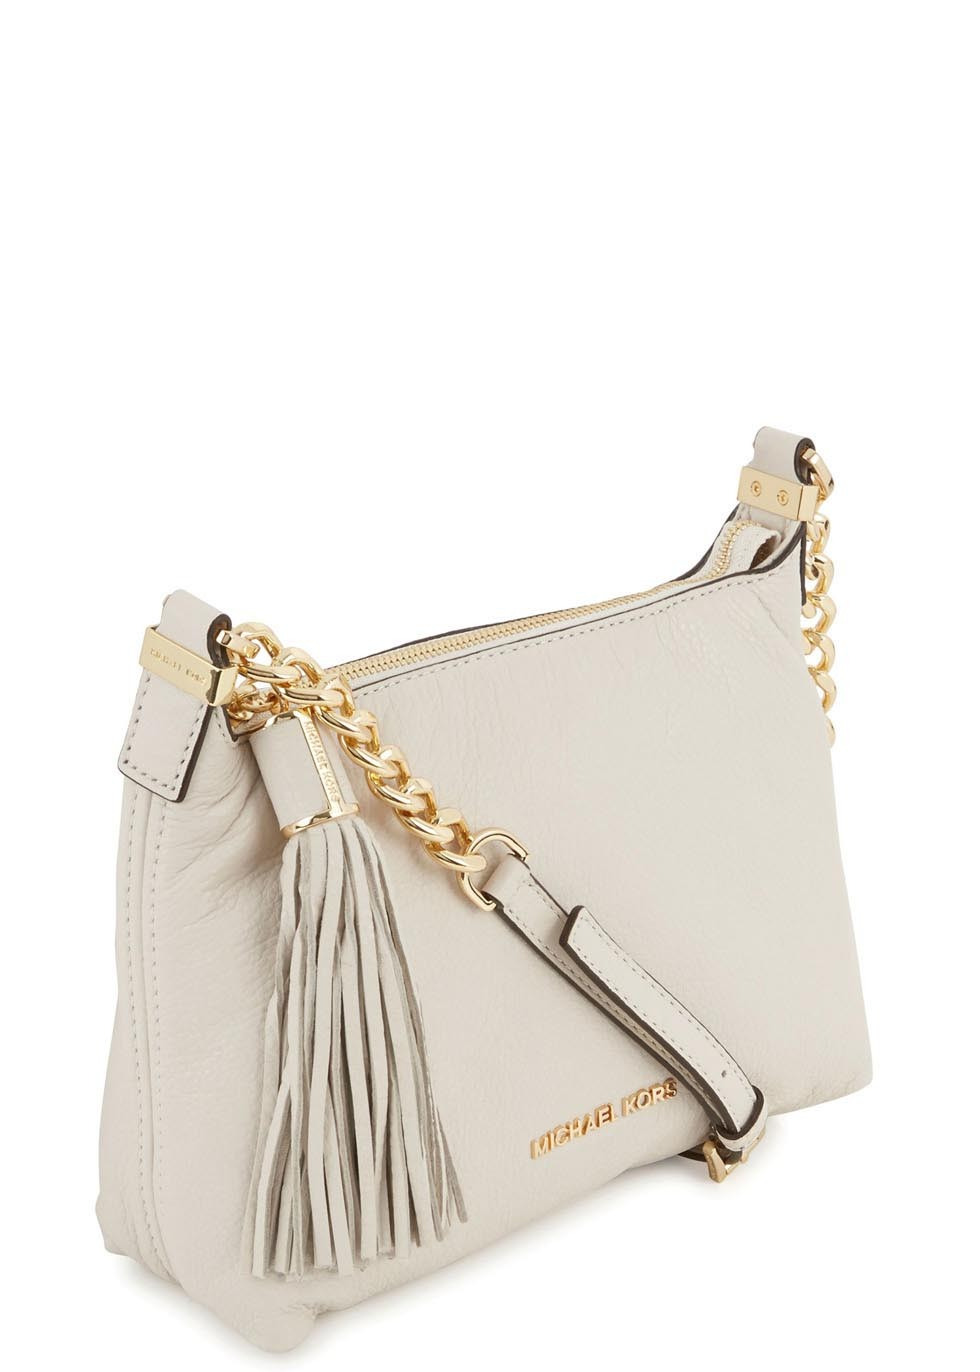 0bcdfc879141c Michael Kors Weston Cream Grained Leather Crossbody Bag in Natural ...